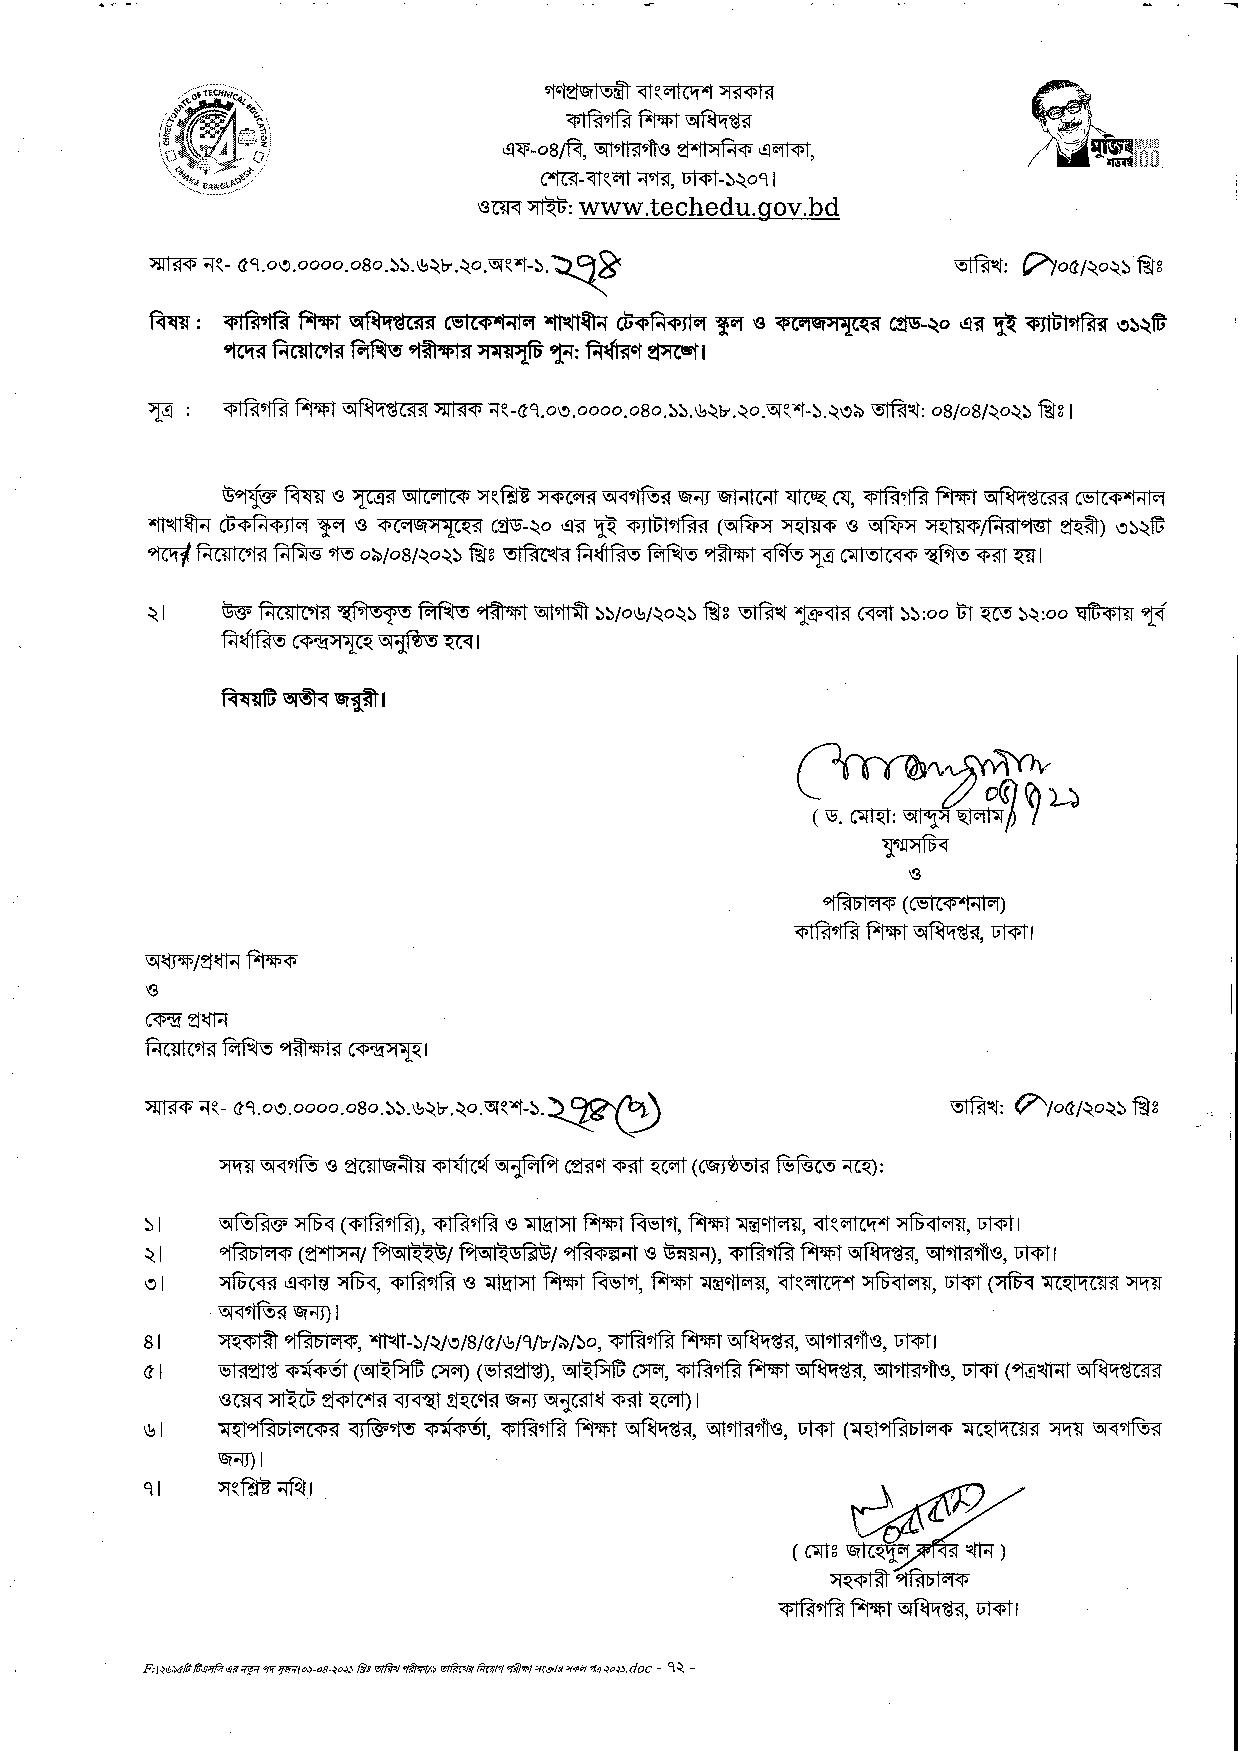 Directorate of Technical Education (DTE) Question solution 2021